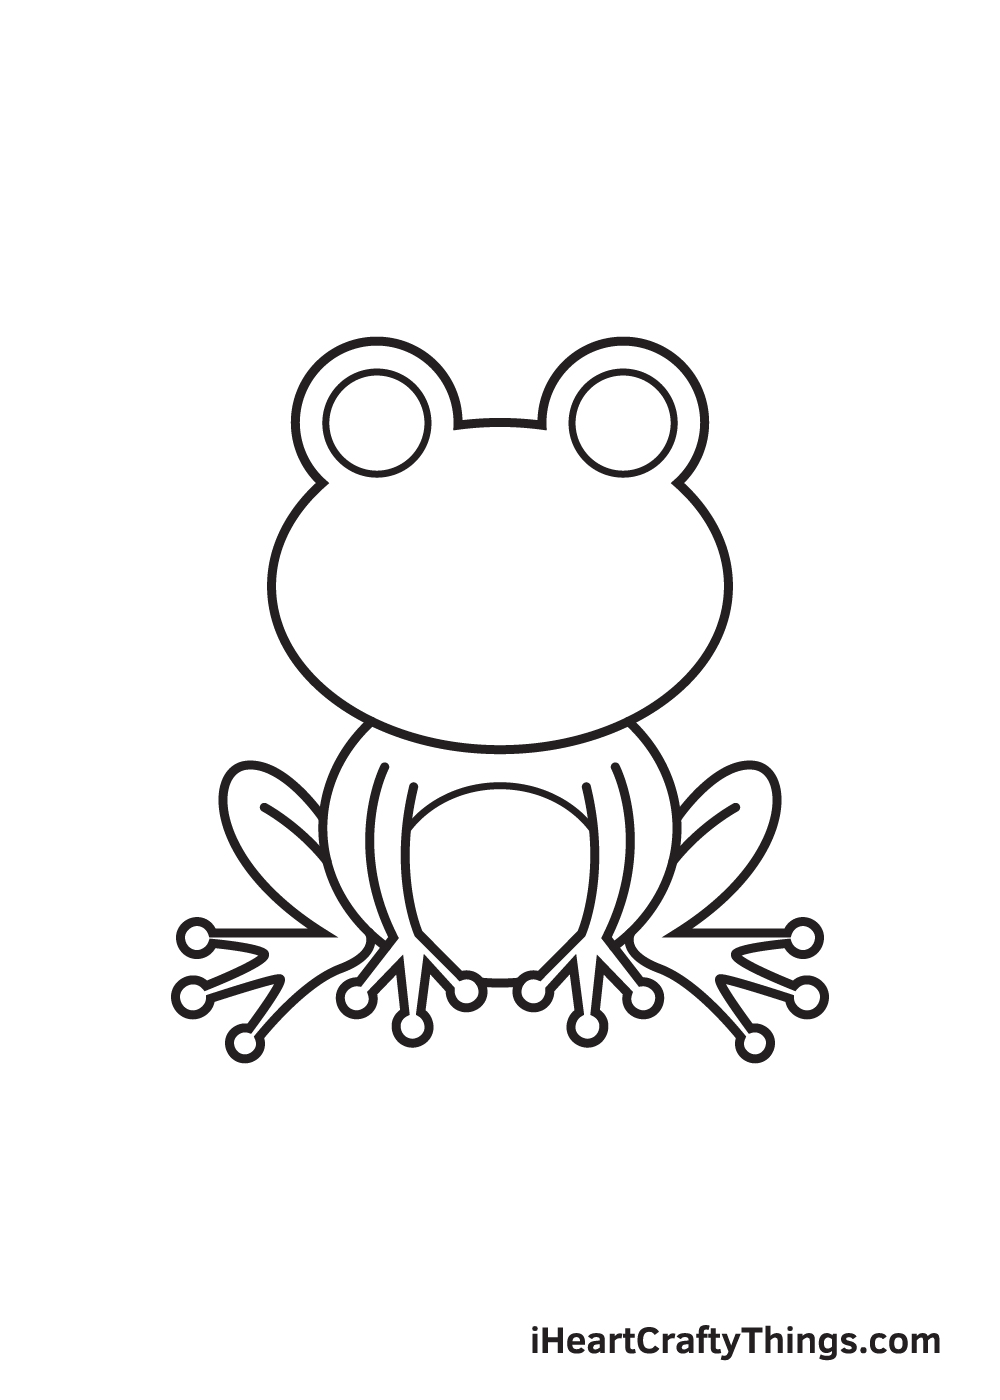 Frog Drawing – Step 7